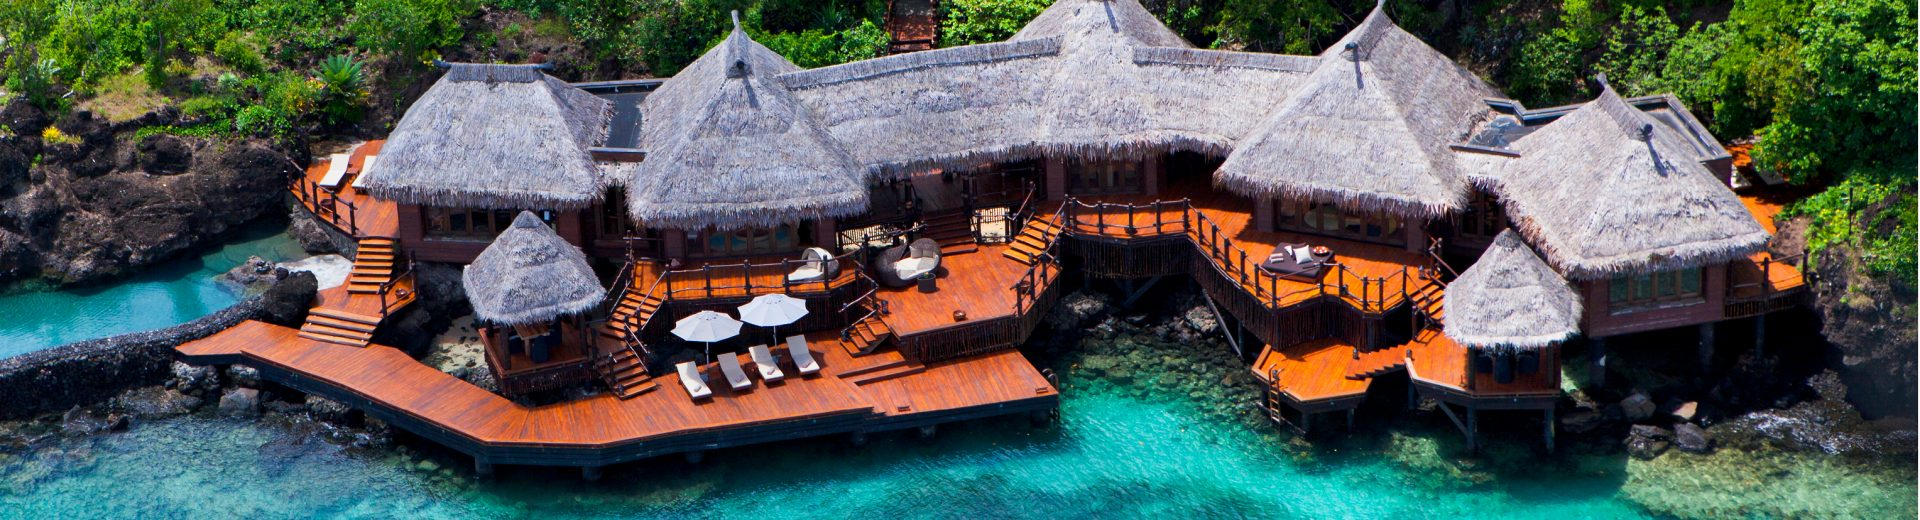 Laucala Island most indulgent hotels aerial view